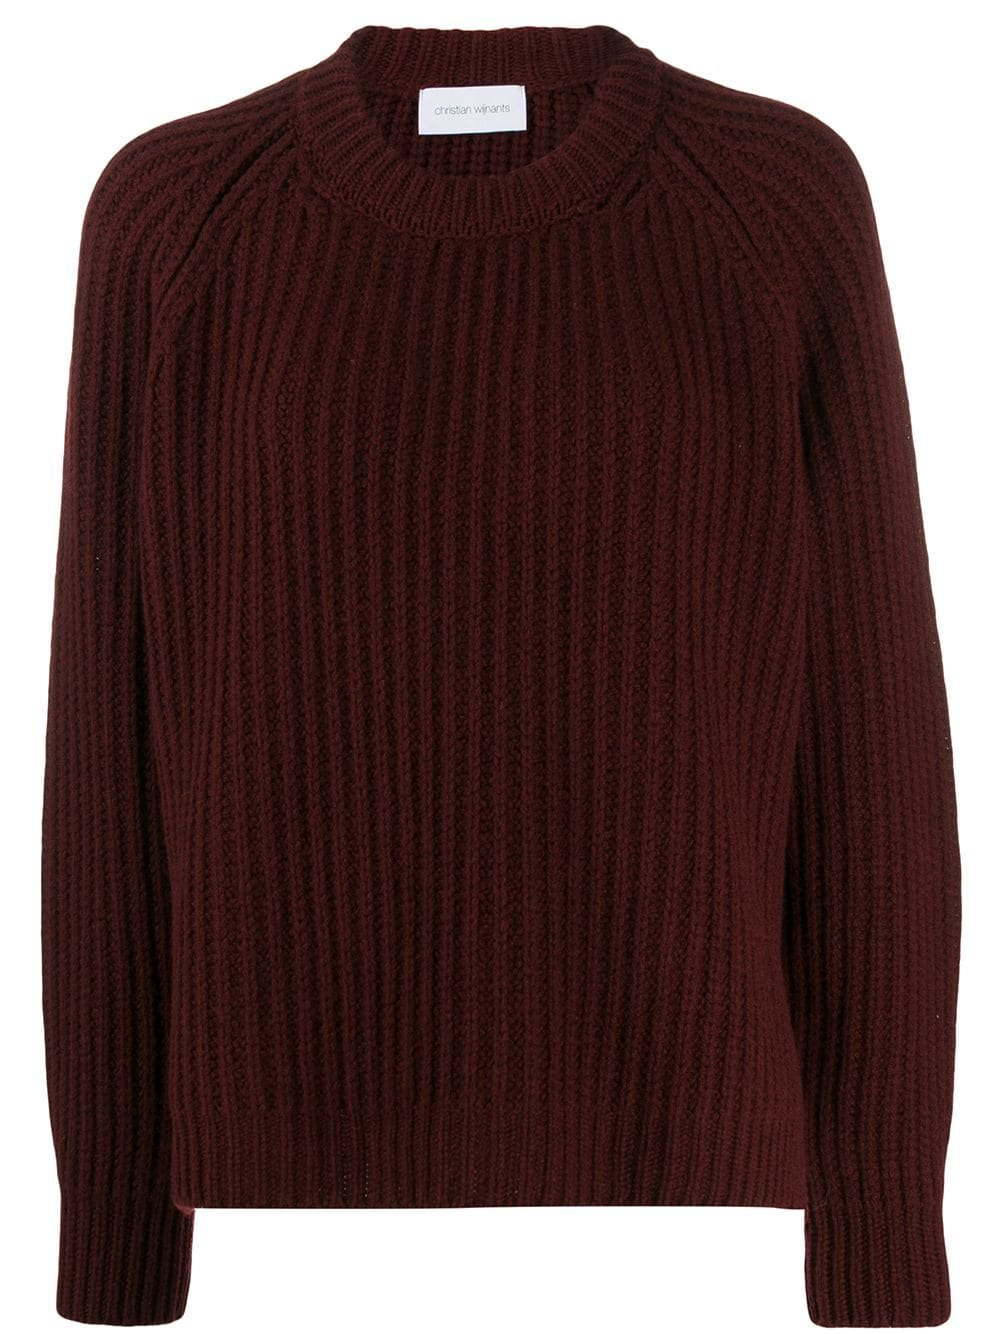 Christian Wijnants Oversized Rib Knit Jumper - Farfetch